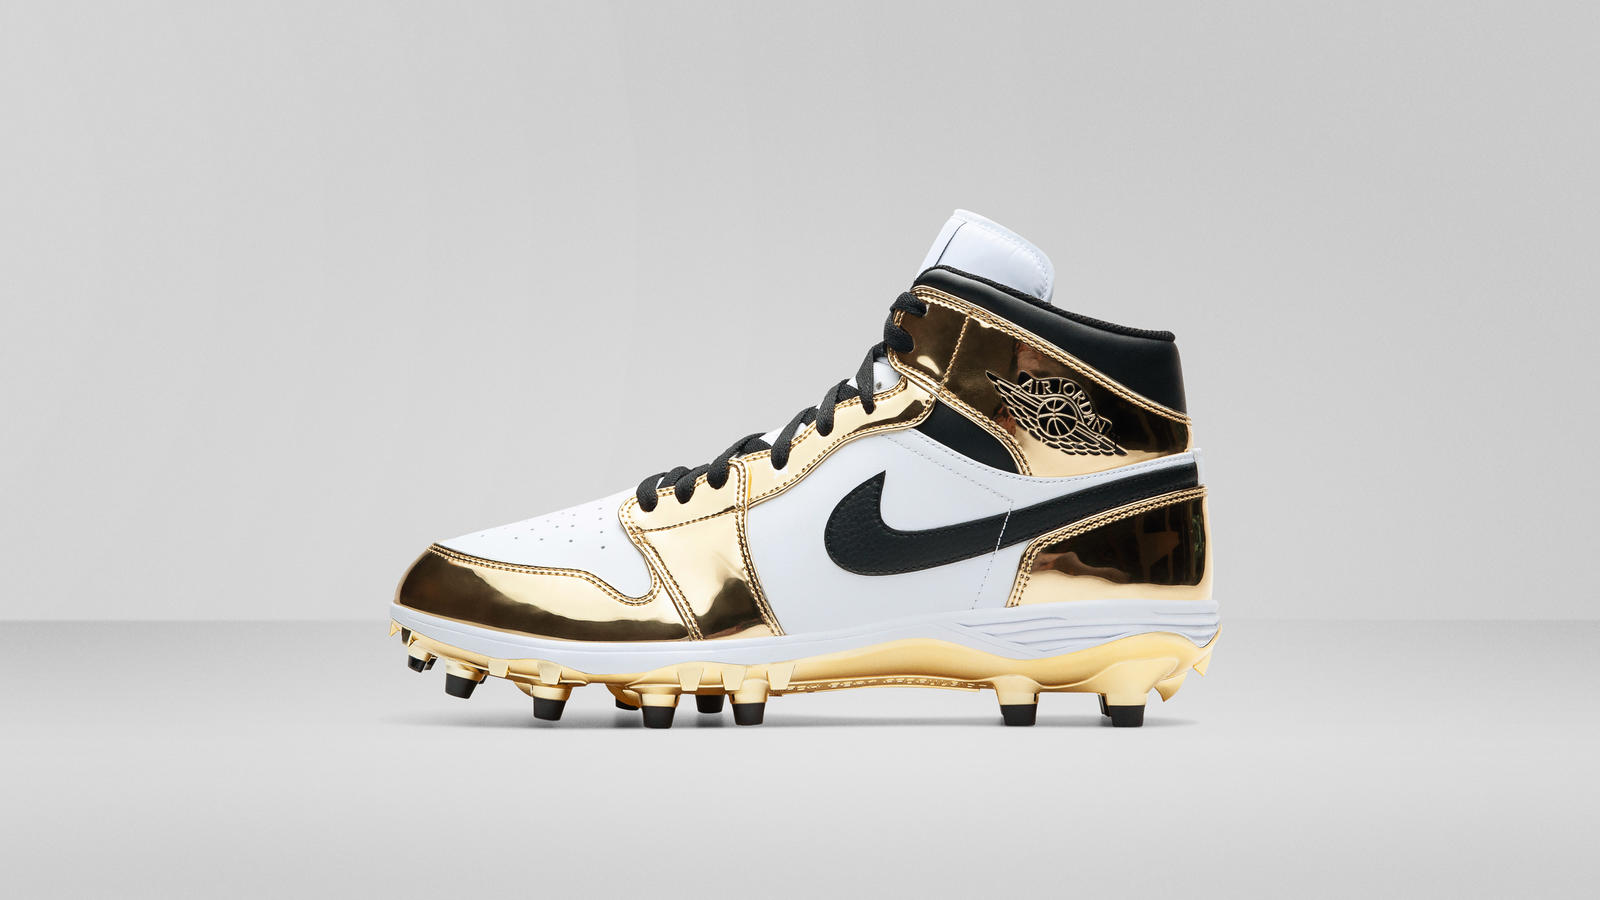 Jordan Brand Cleats NFL Opening Week 2019 1